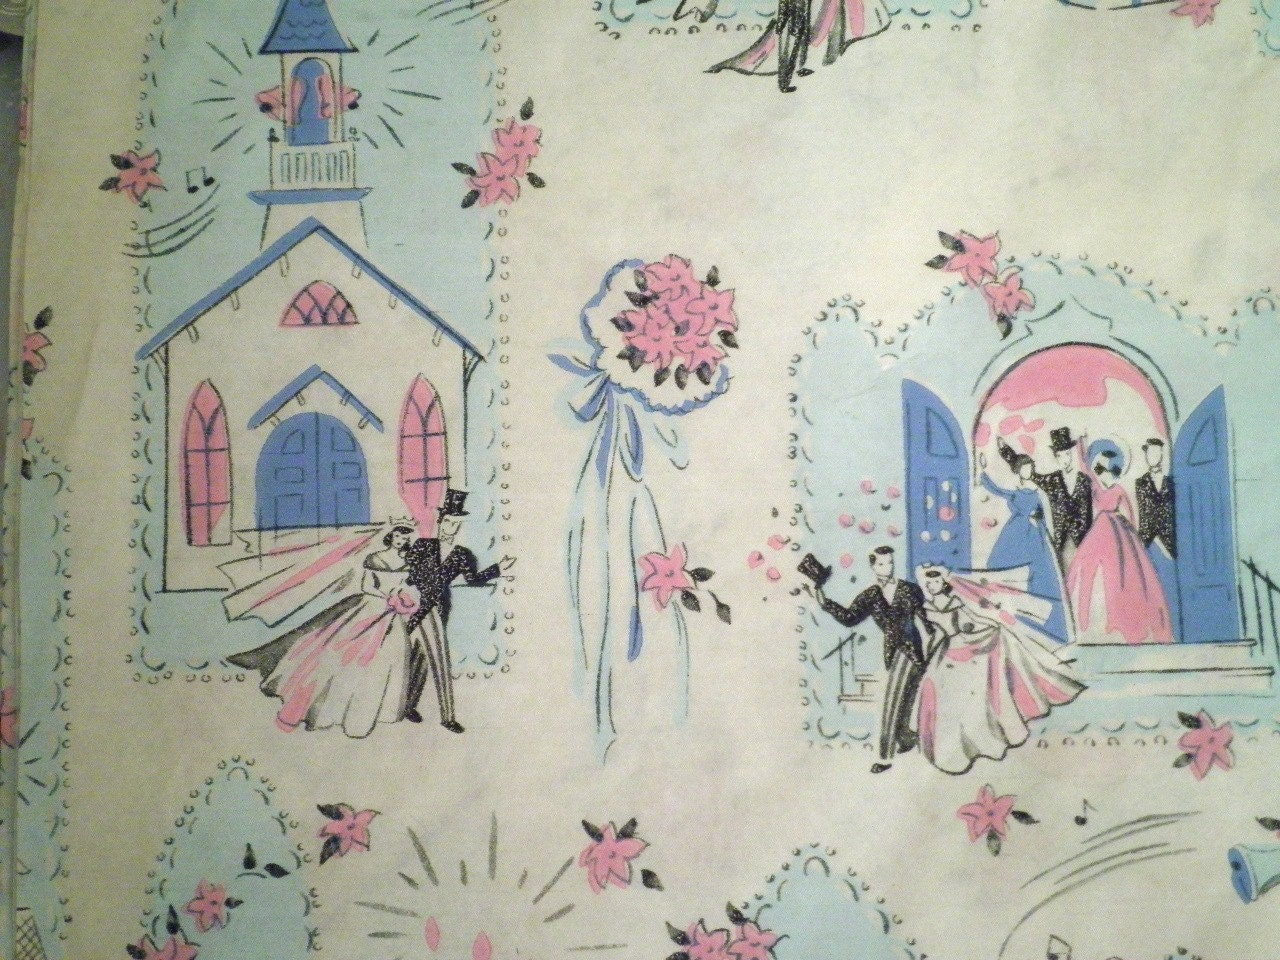 Wedding Gift Paper: 1950s Vintage Wedding Gift Wrap Paper 3 Different Patterns